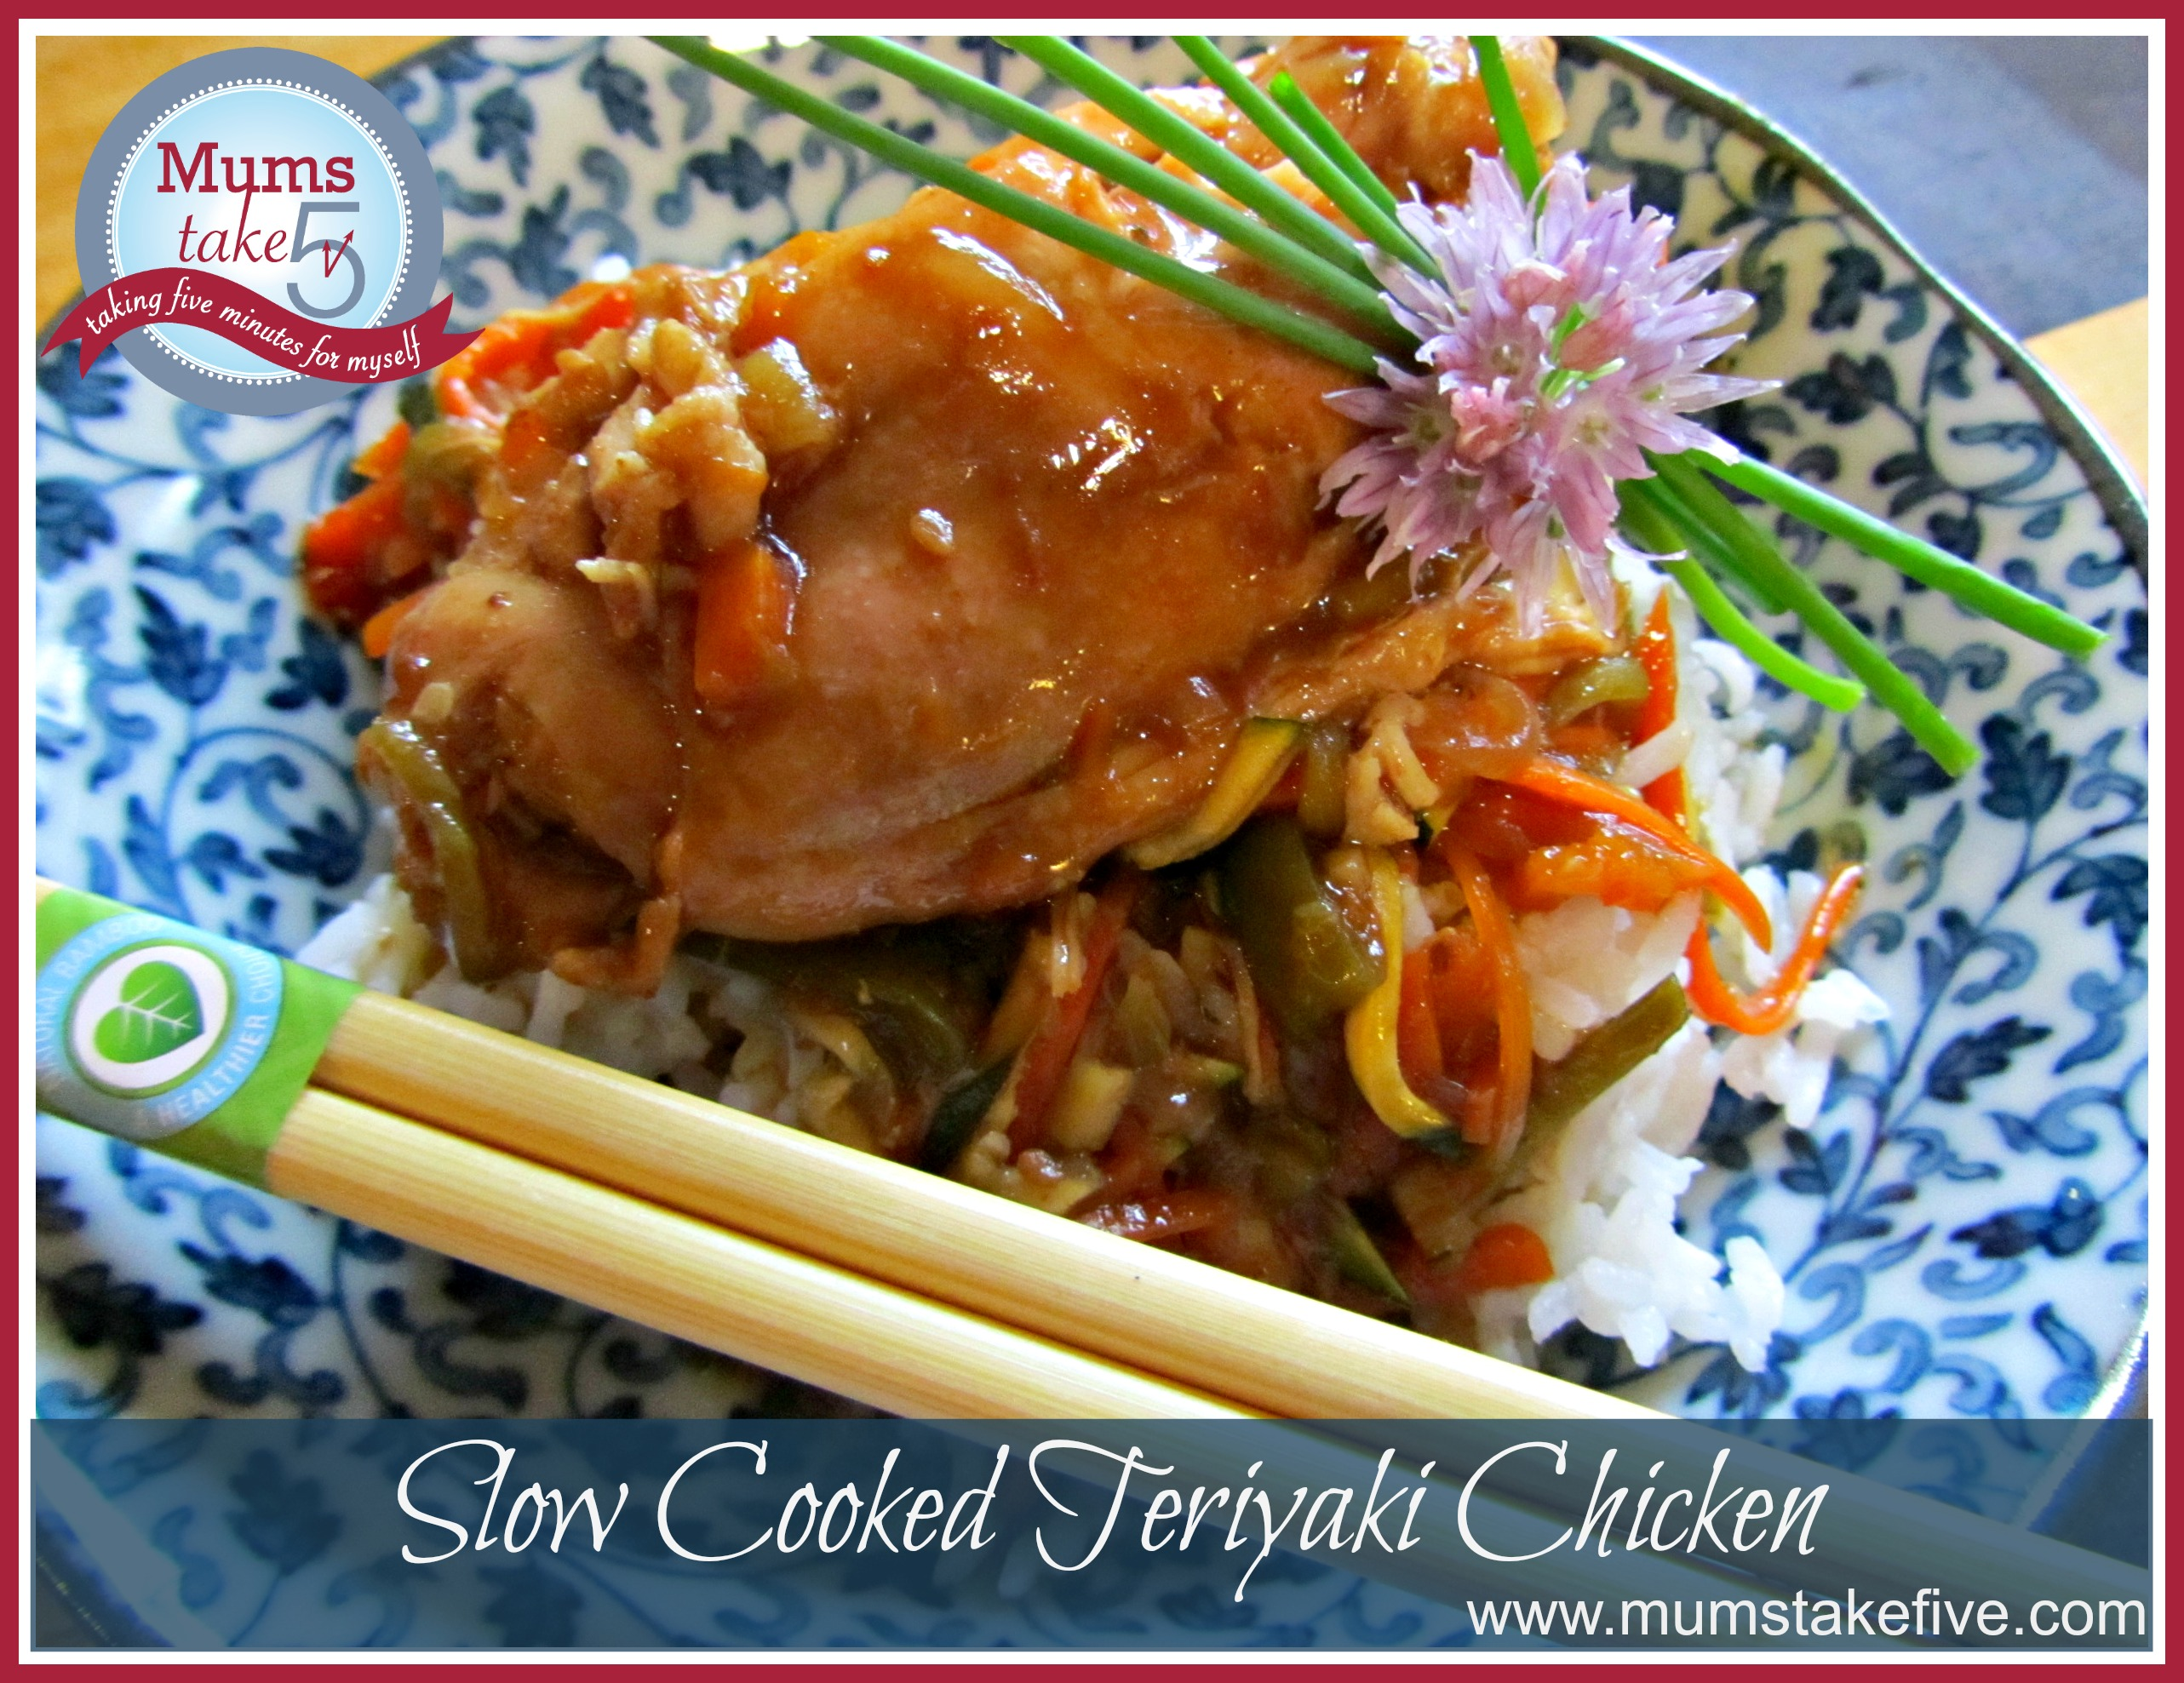 Slow Cooked Teriyaki Chicken  www.mumstakefive.com